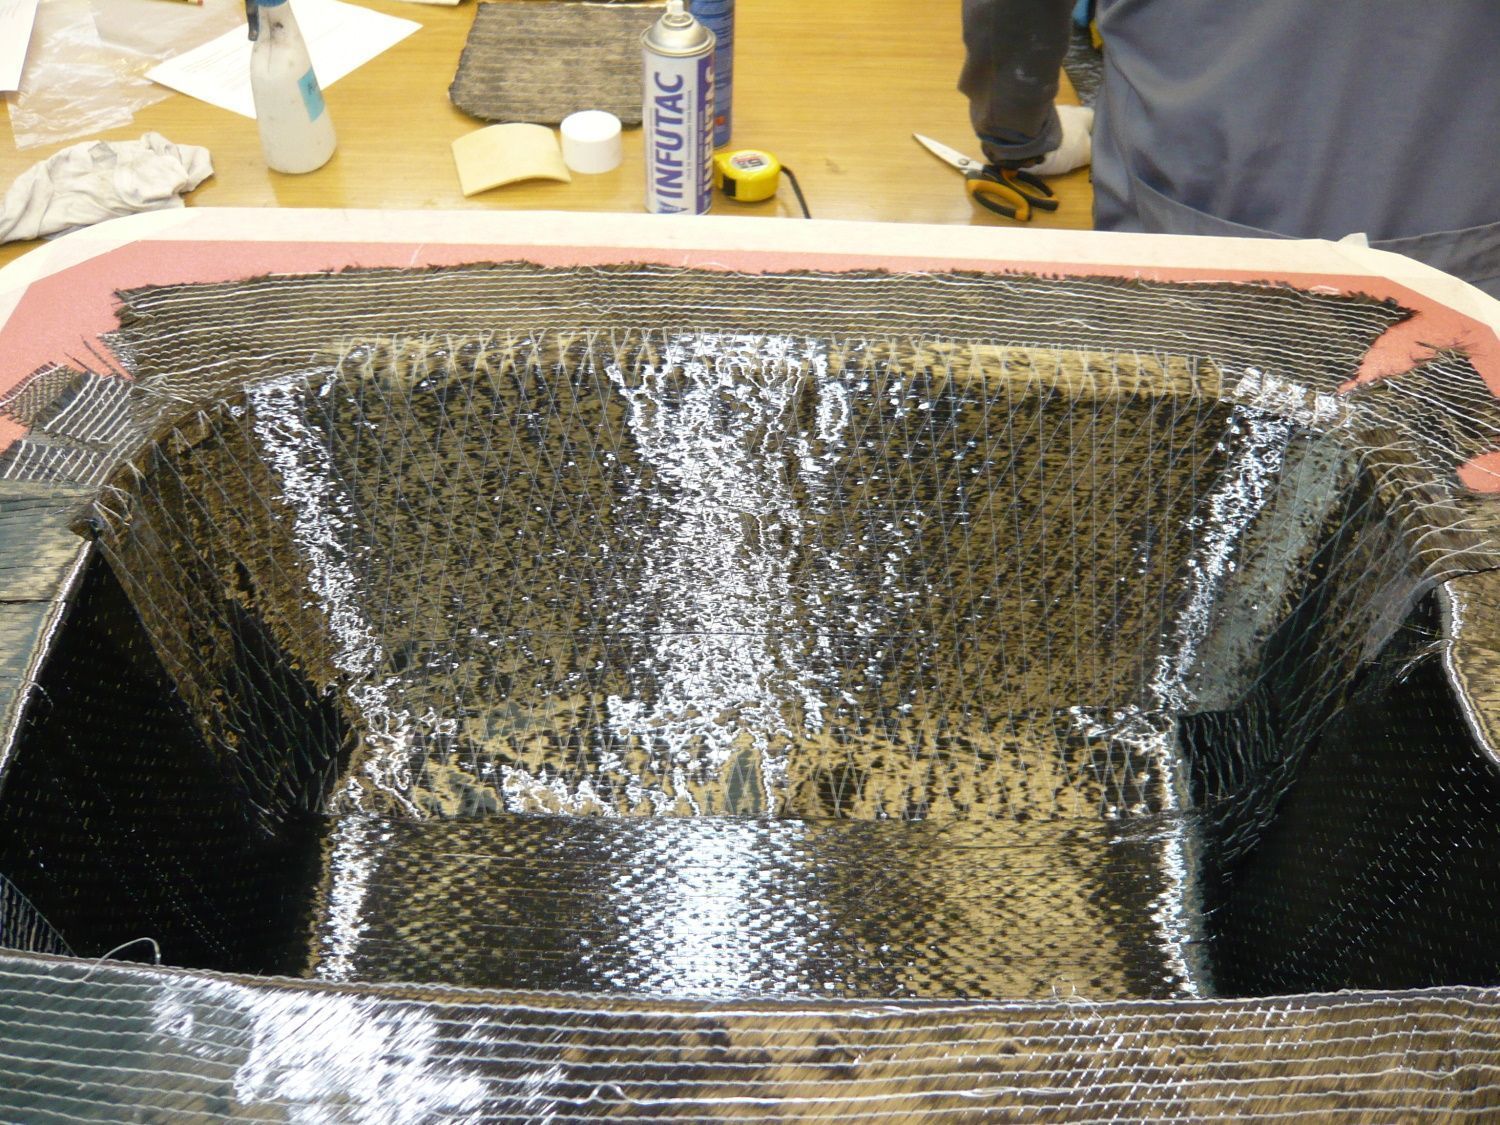 Drying the mold resin with fiber